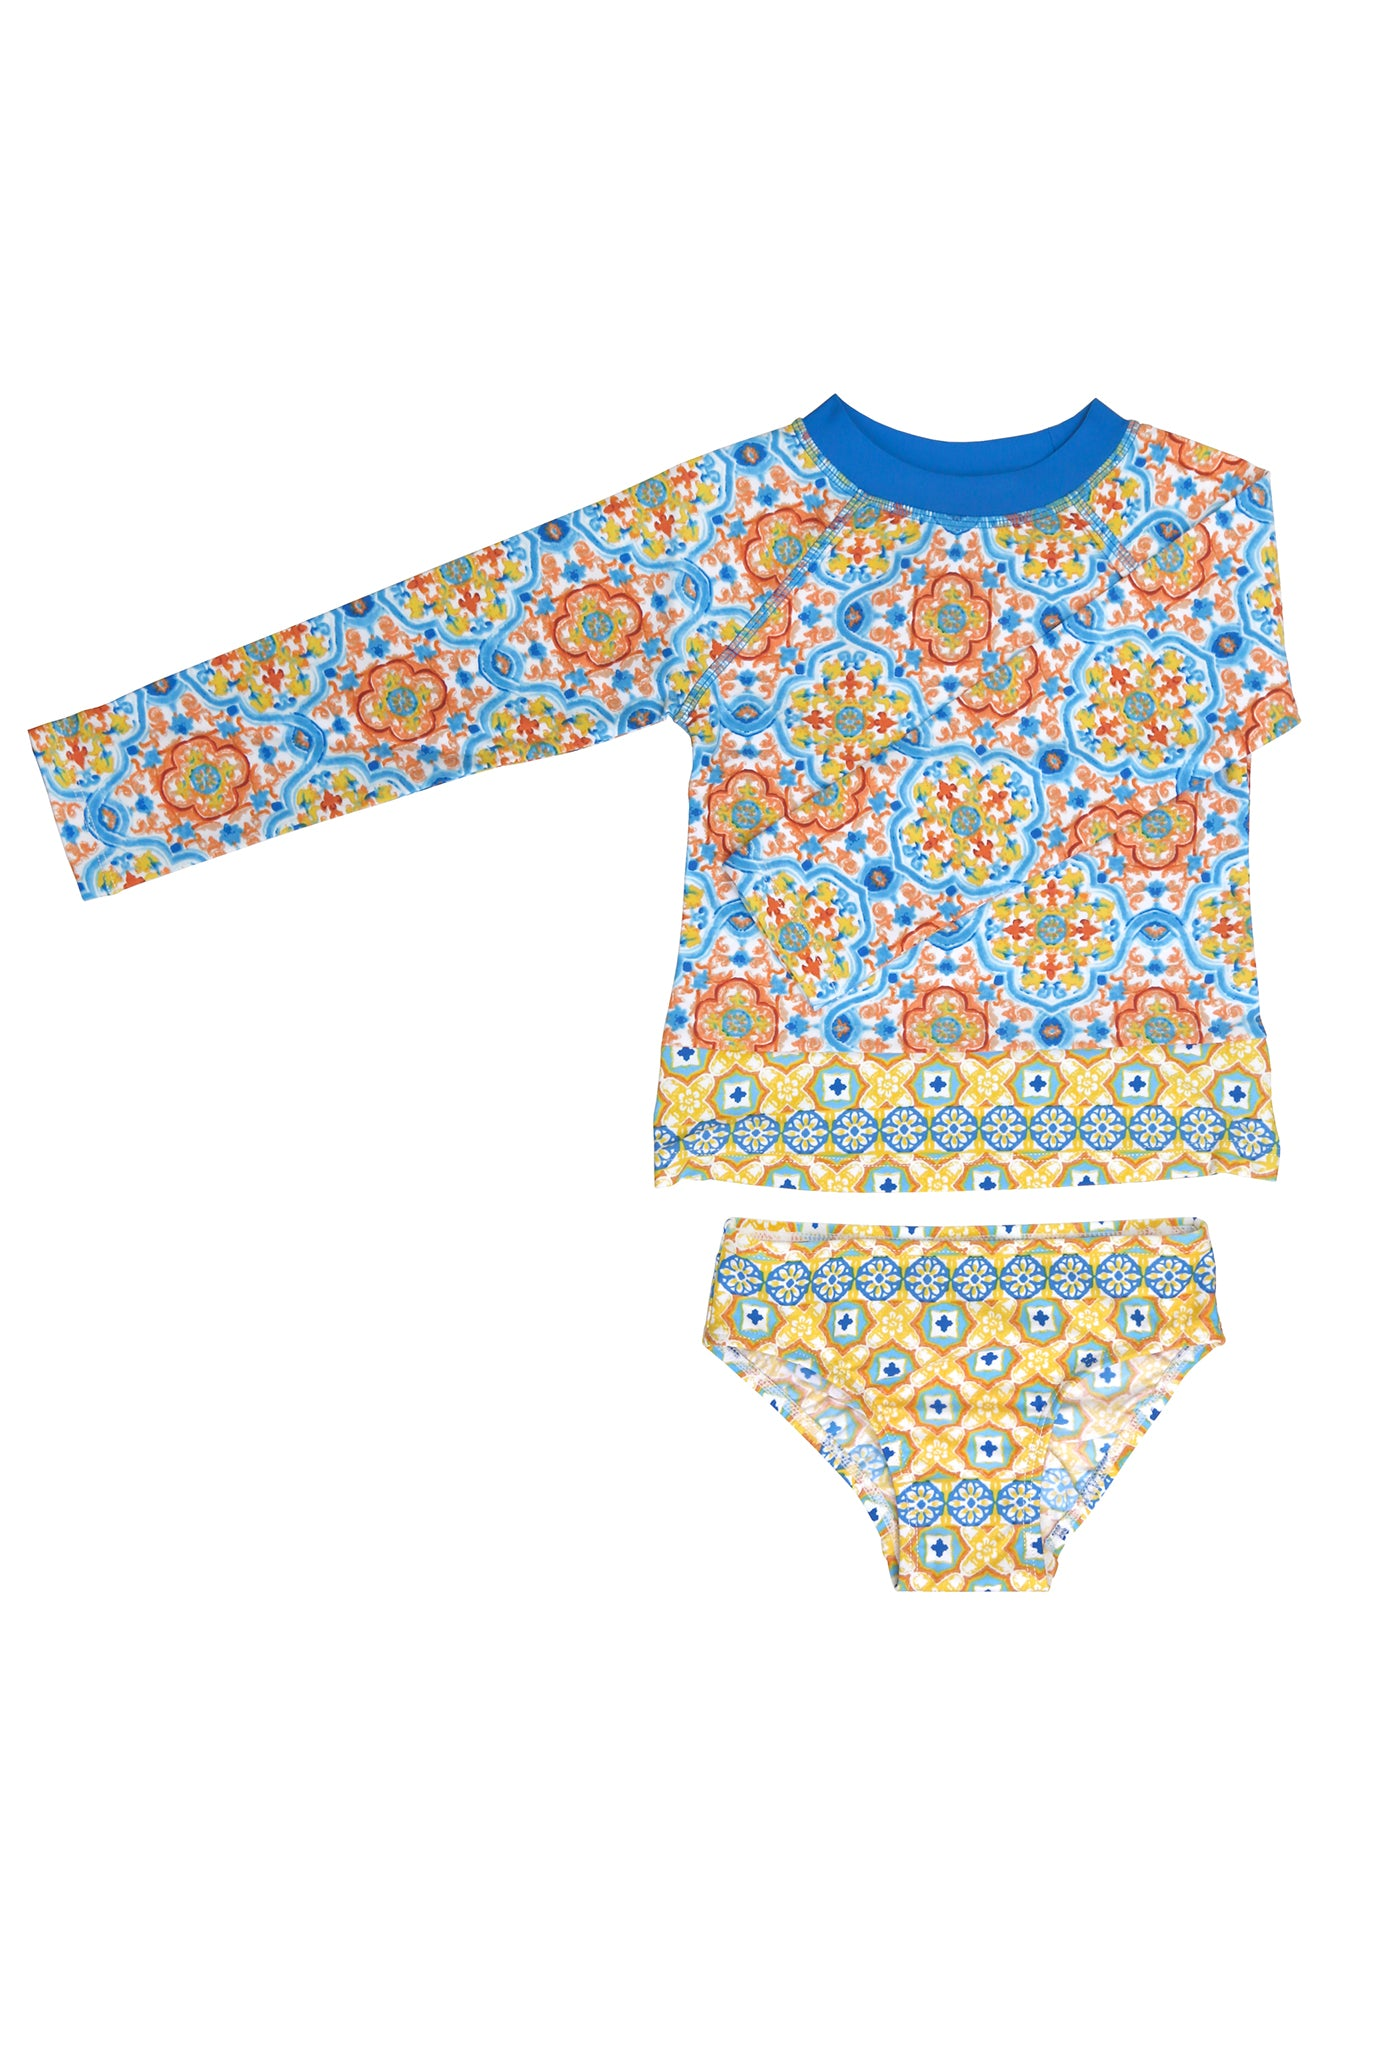 Spanish Tile Raglan Long Sleeve Rash Guard Set, yellow